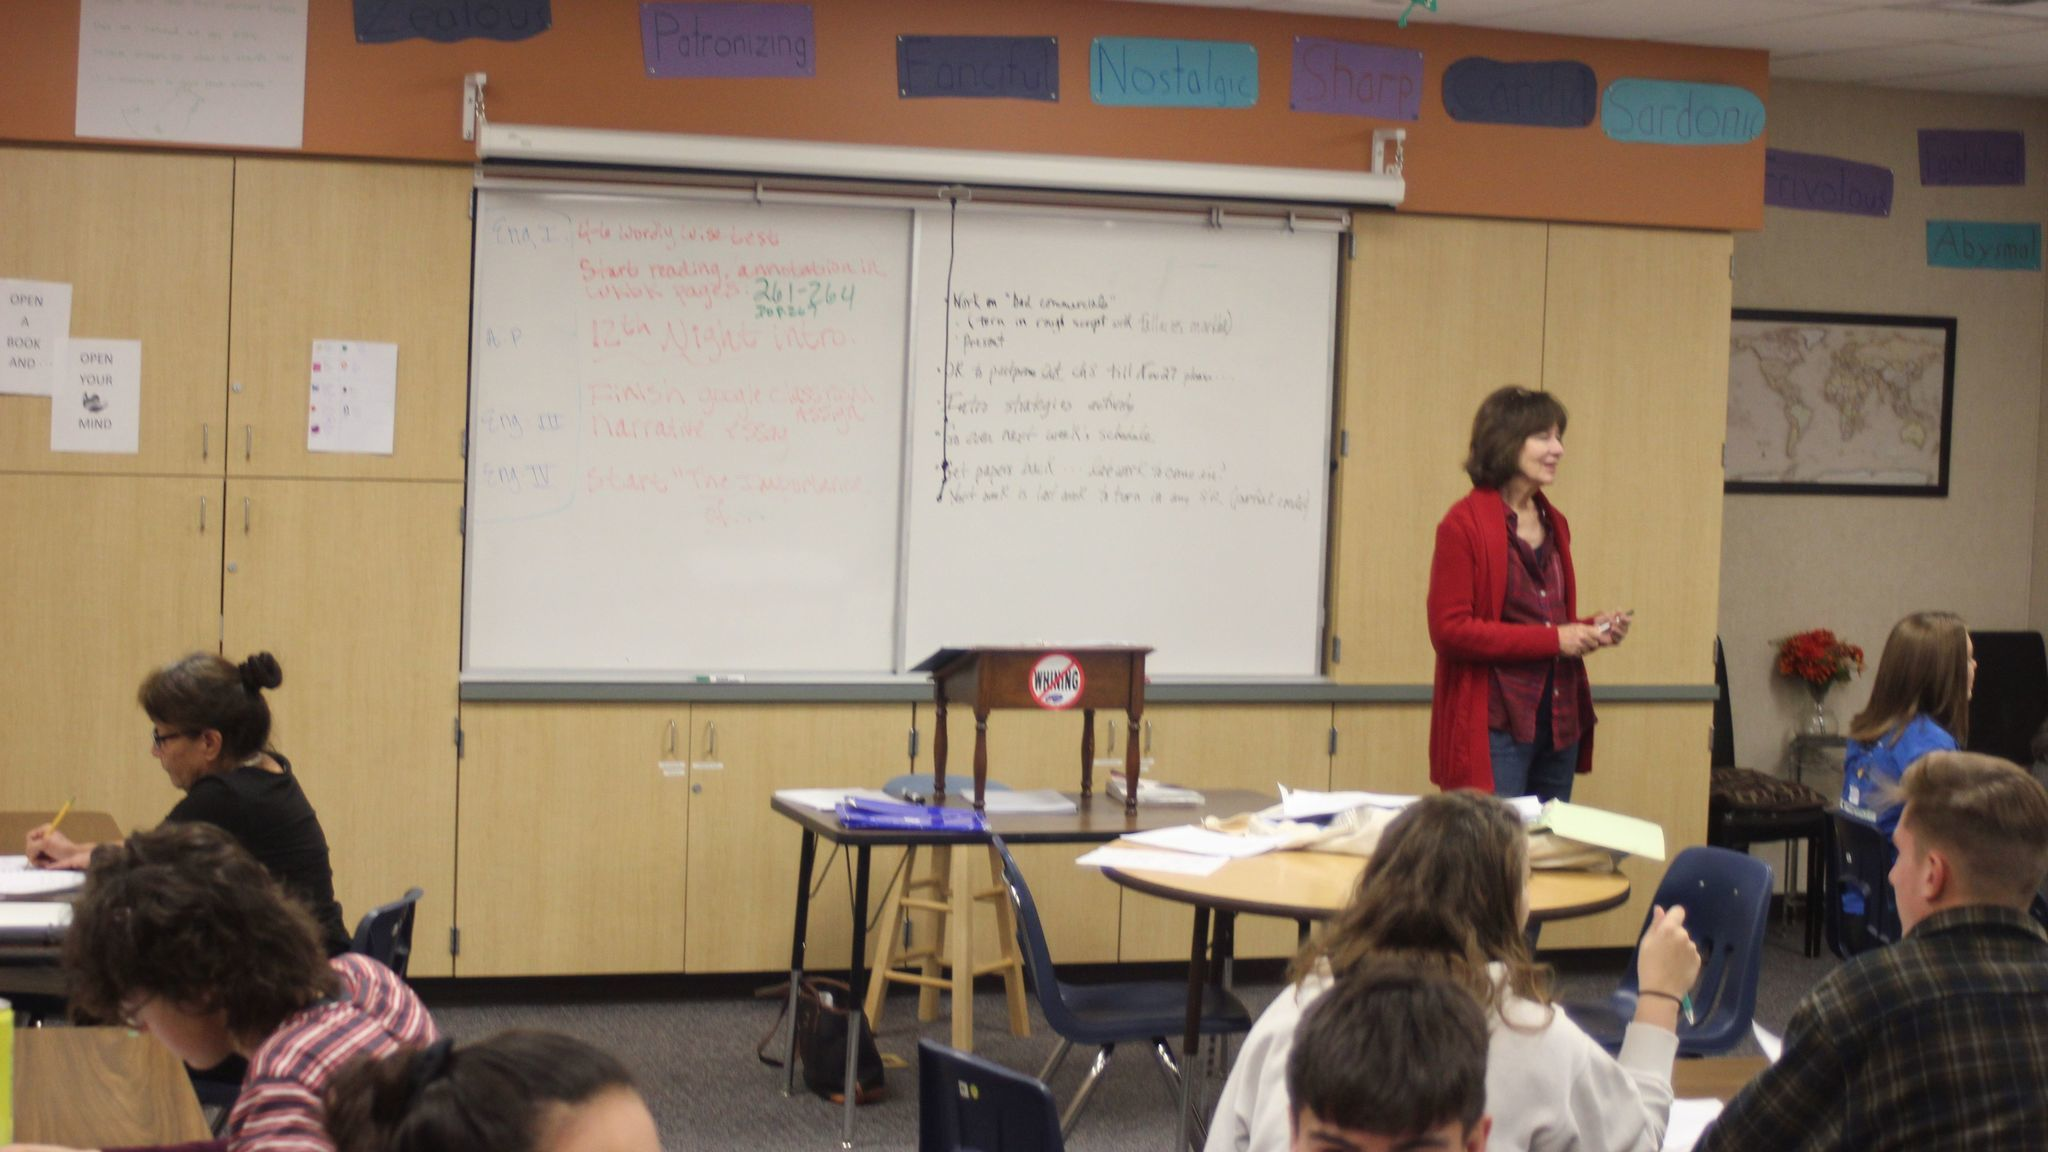 Palomar Professor Glenda Snell explains an assignment to one of the groups in her English 100 class.